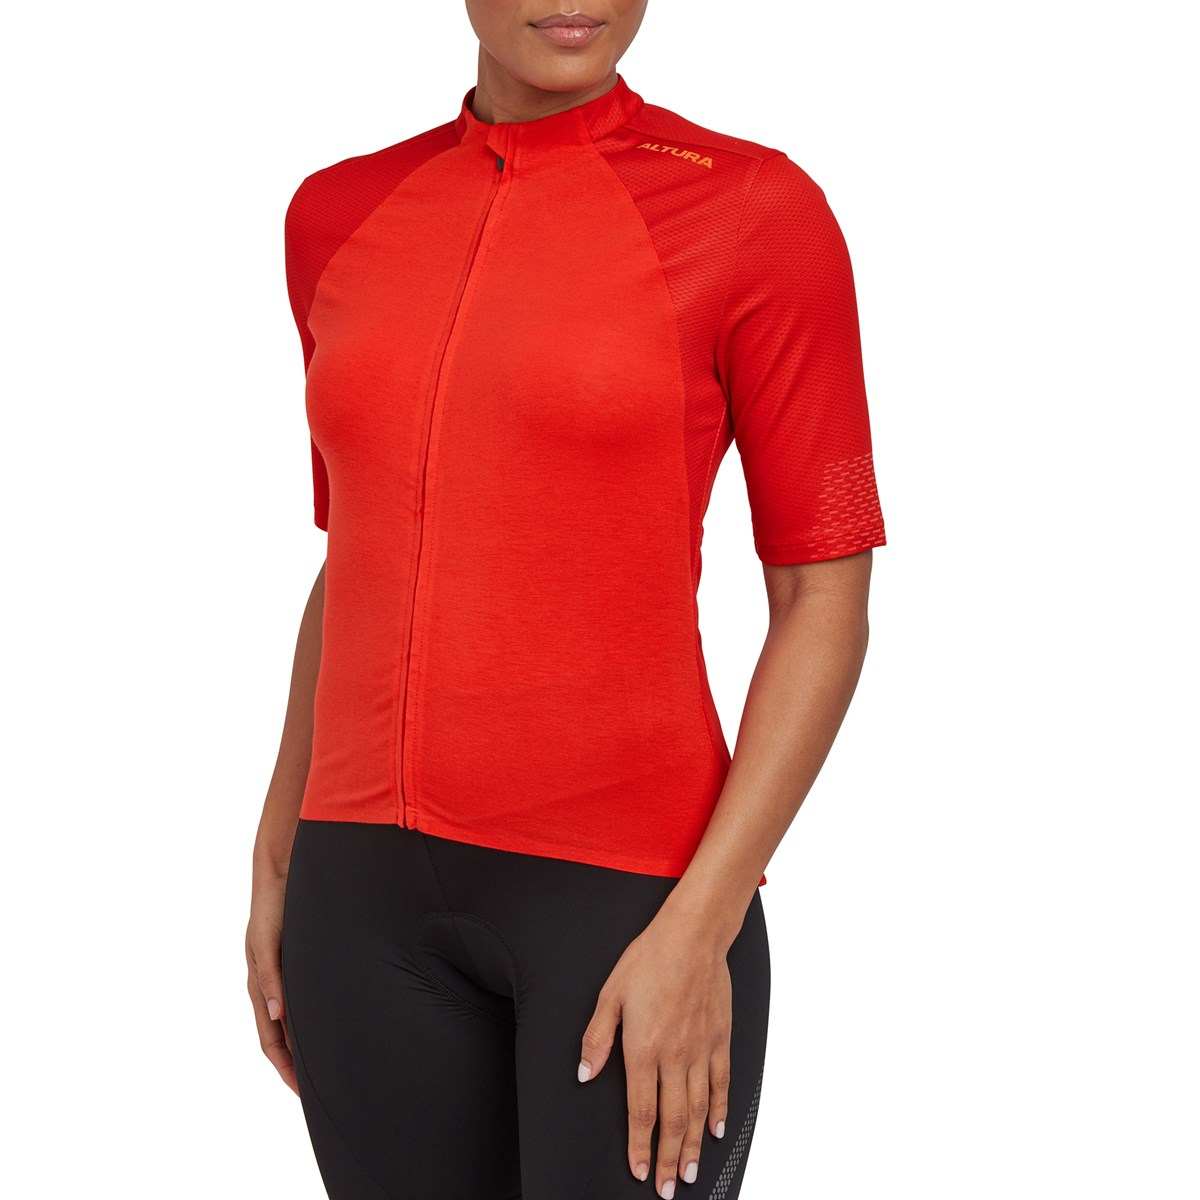 Endurance Women's Short Sleeve Jersey